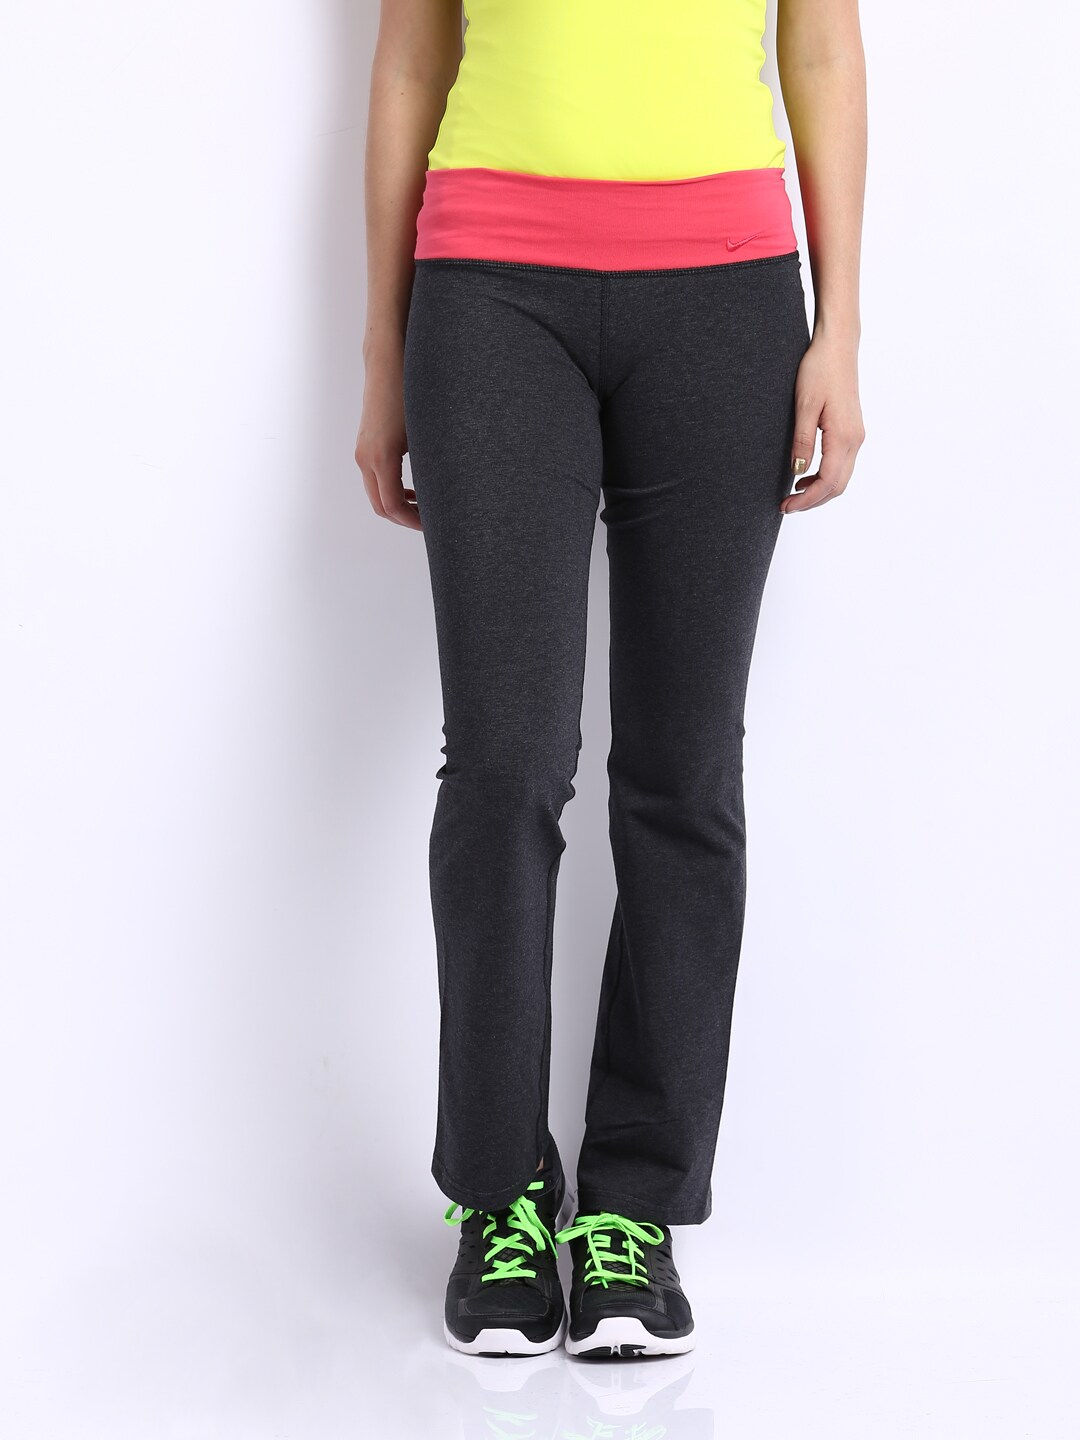 Cool Back Gt Gallery For Gt Nike Track Pants Women